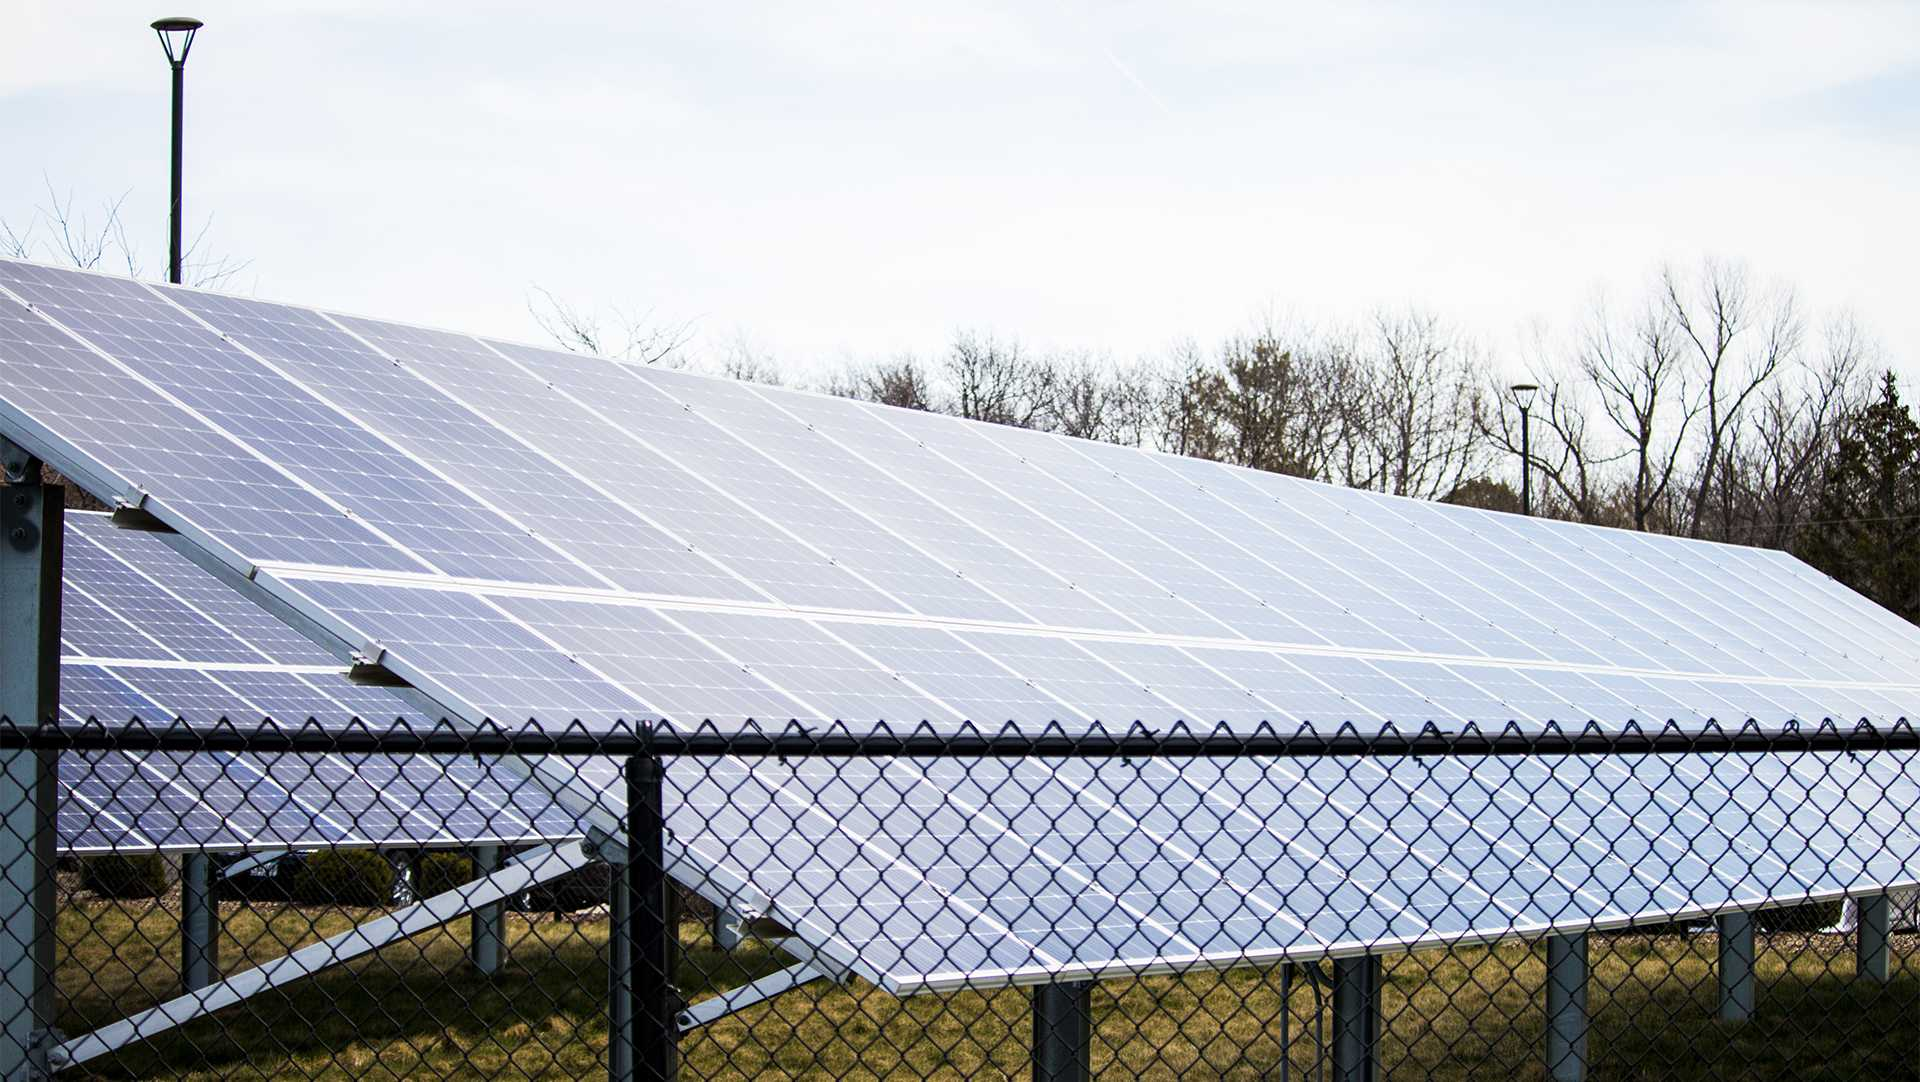 Solar panels are seen outside of the Johnson County Administration Building on April 23, 2018. (Katina Zentz/The Daily Iowan)